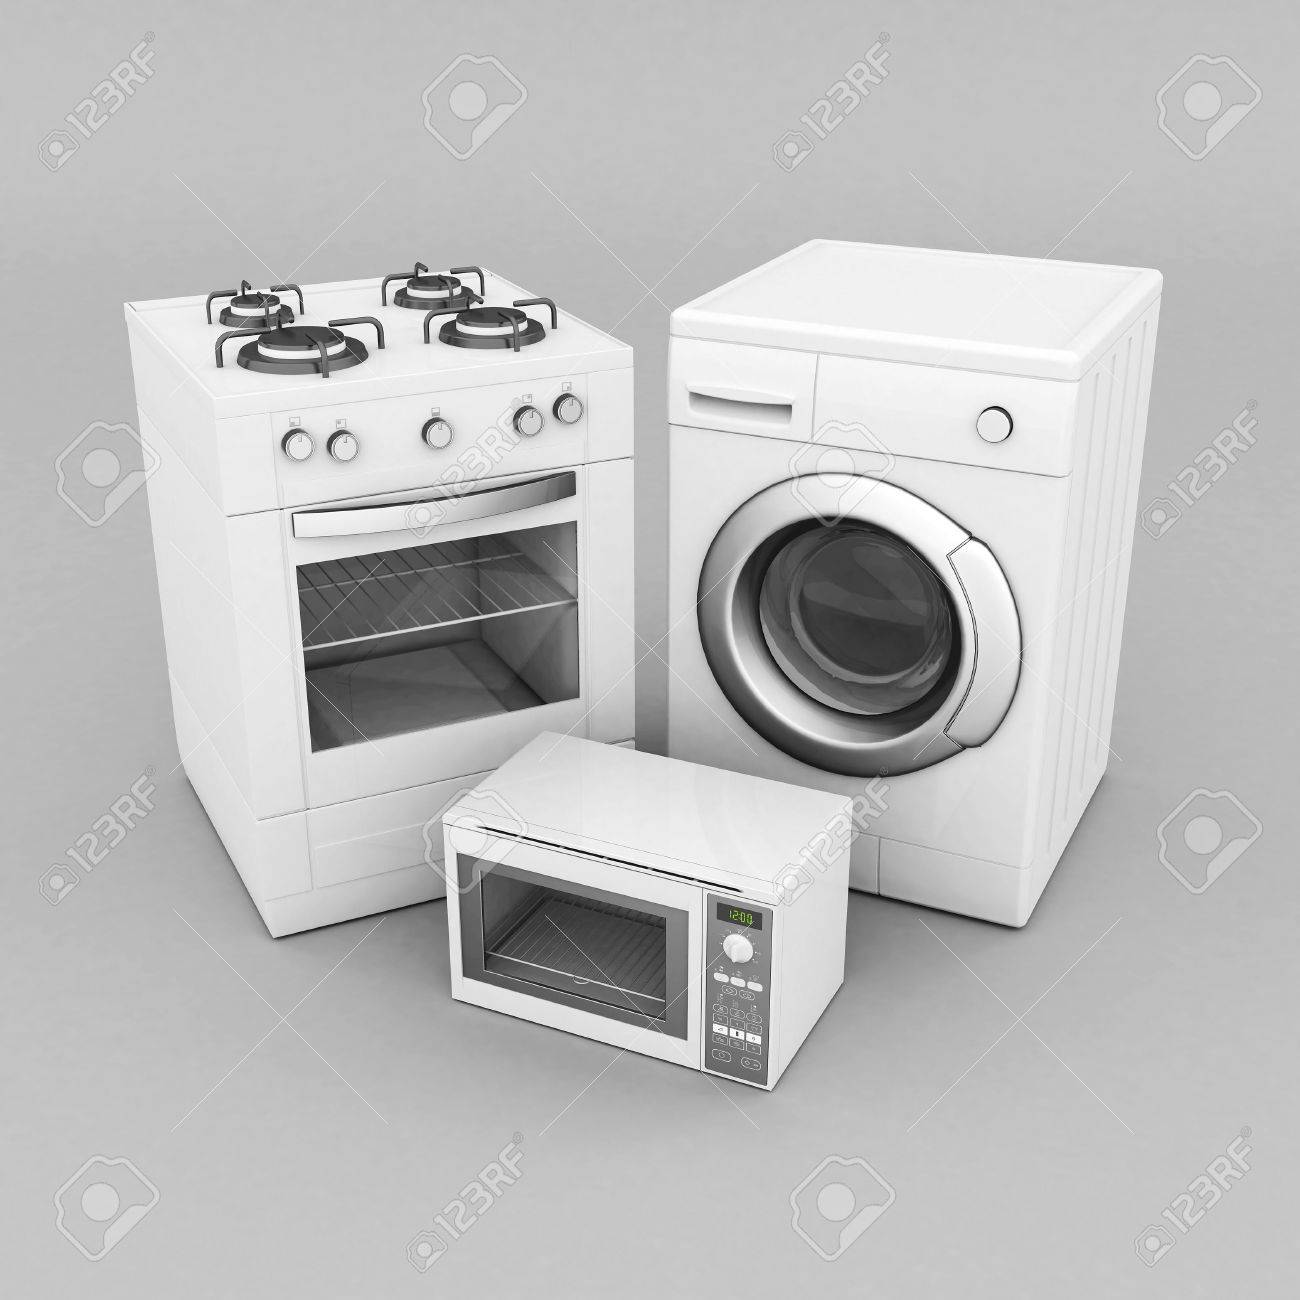 picture of household appliances on a gray background Stock Photo - 21926777